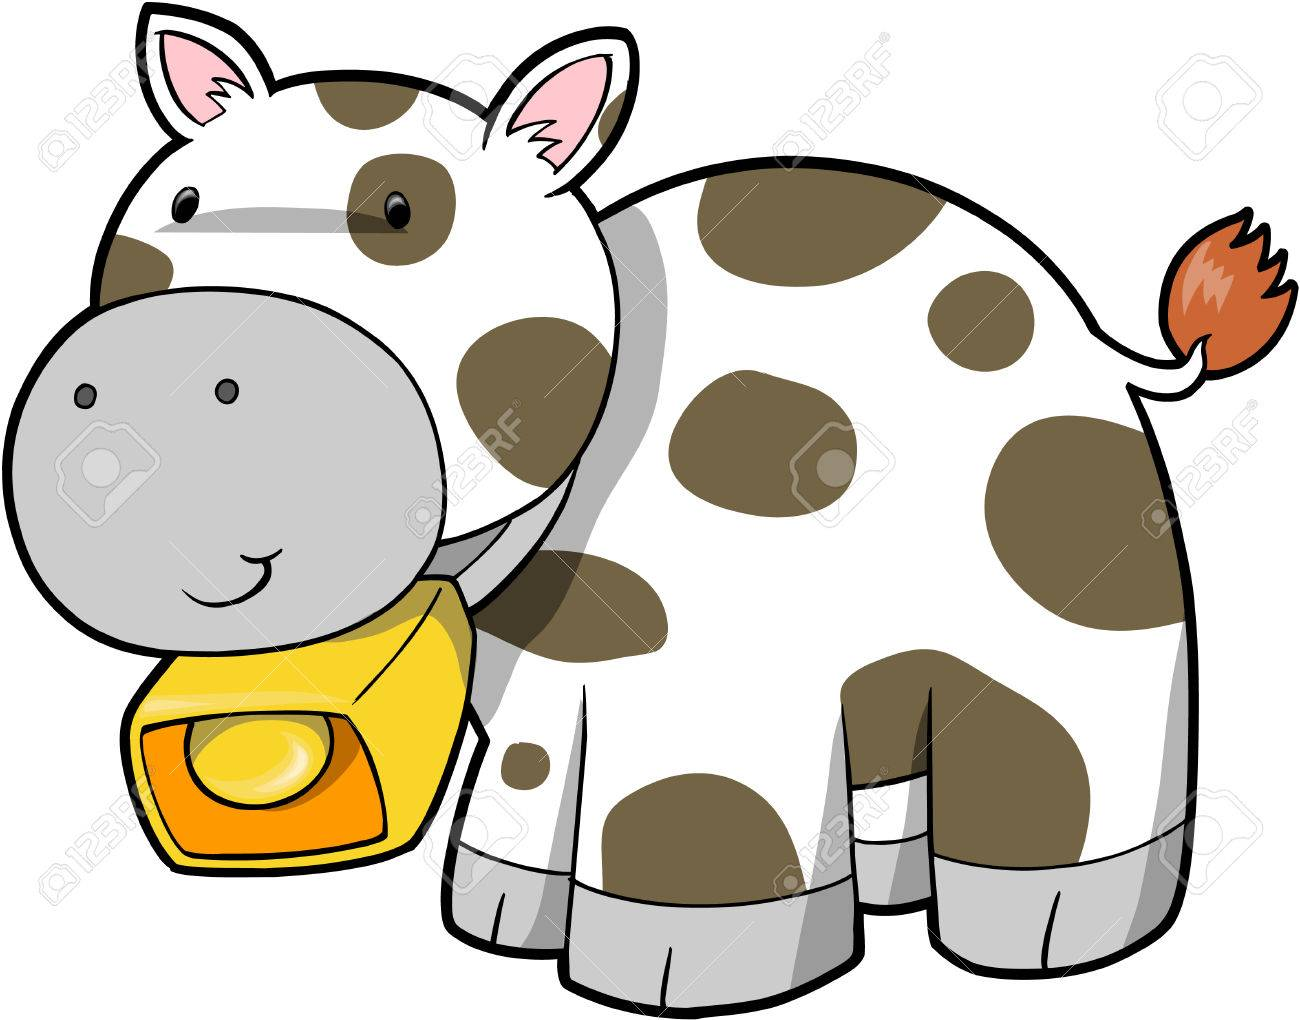 Cute Cow Vector Illustration Stock Vector - 1779107